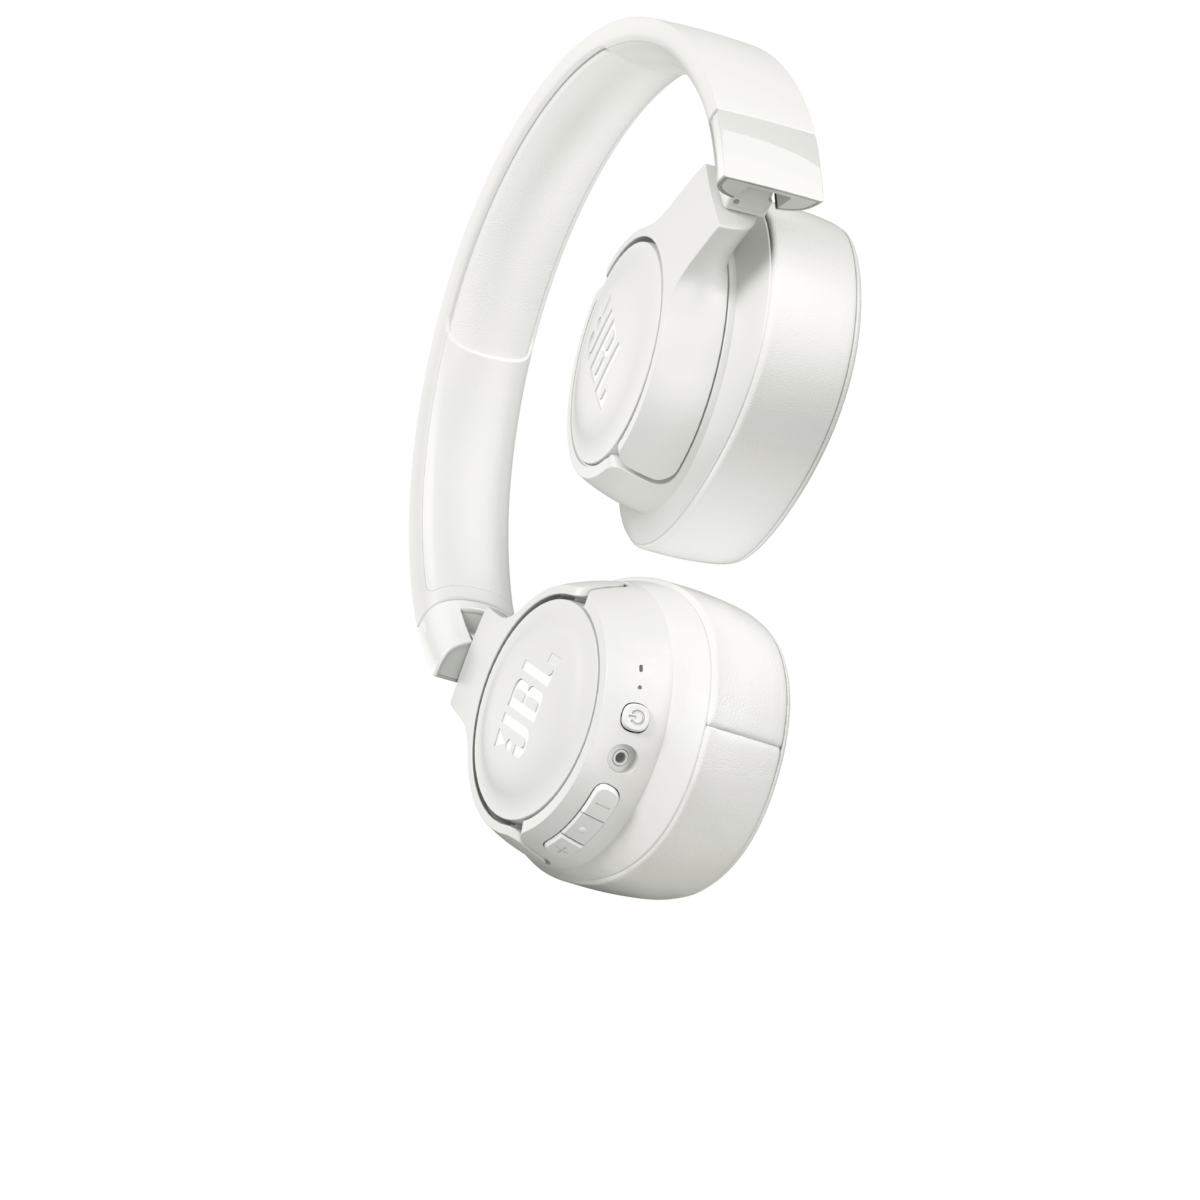 JBL Product Image TUNE700BT White Side